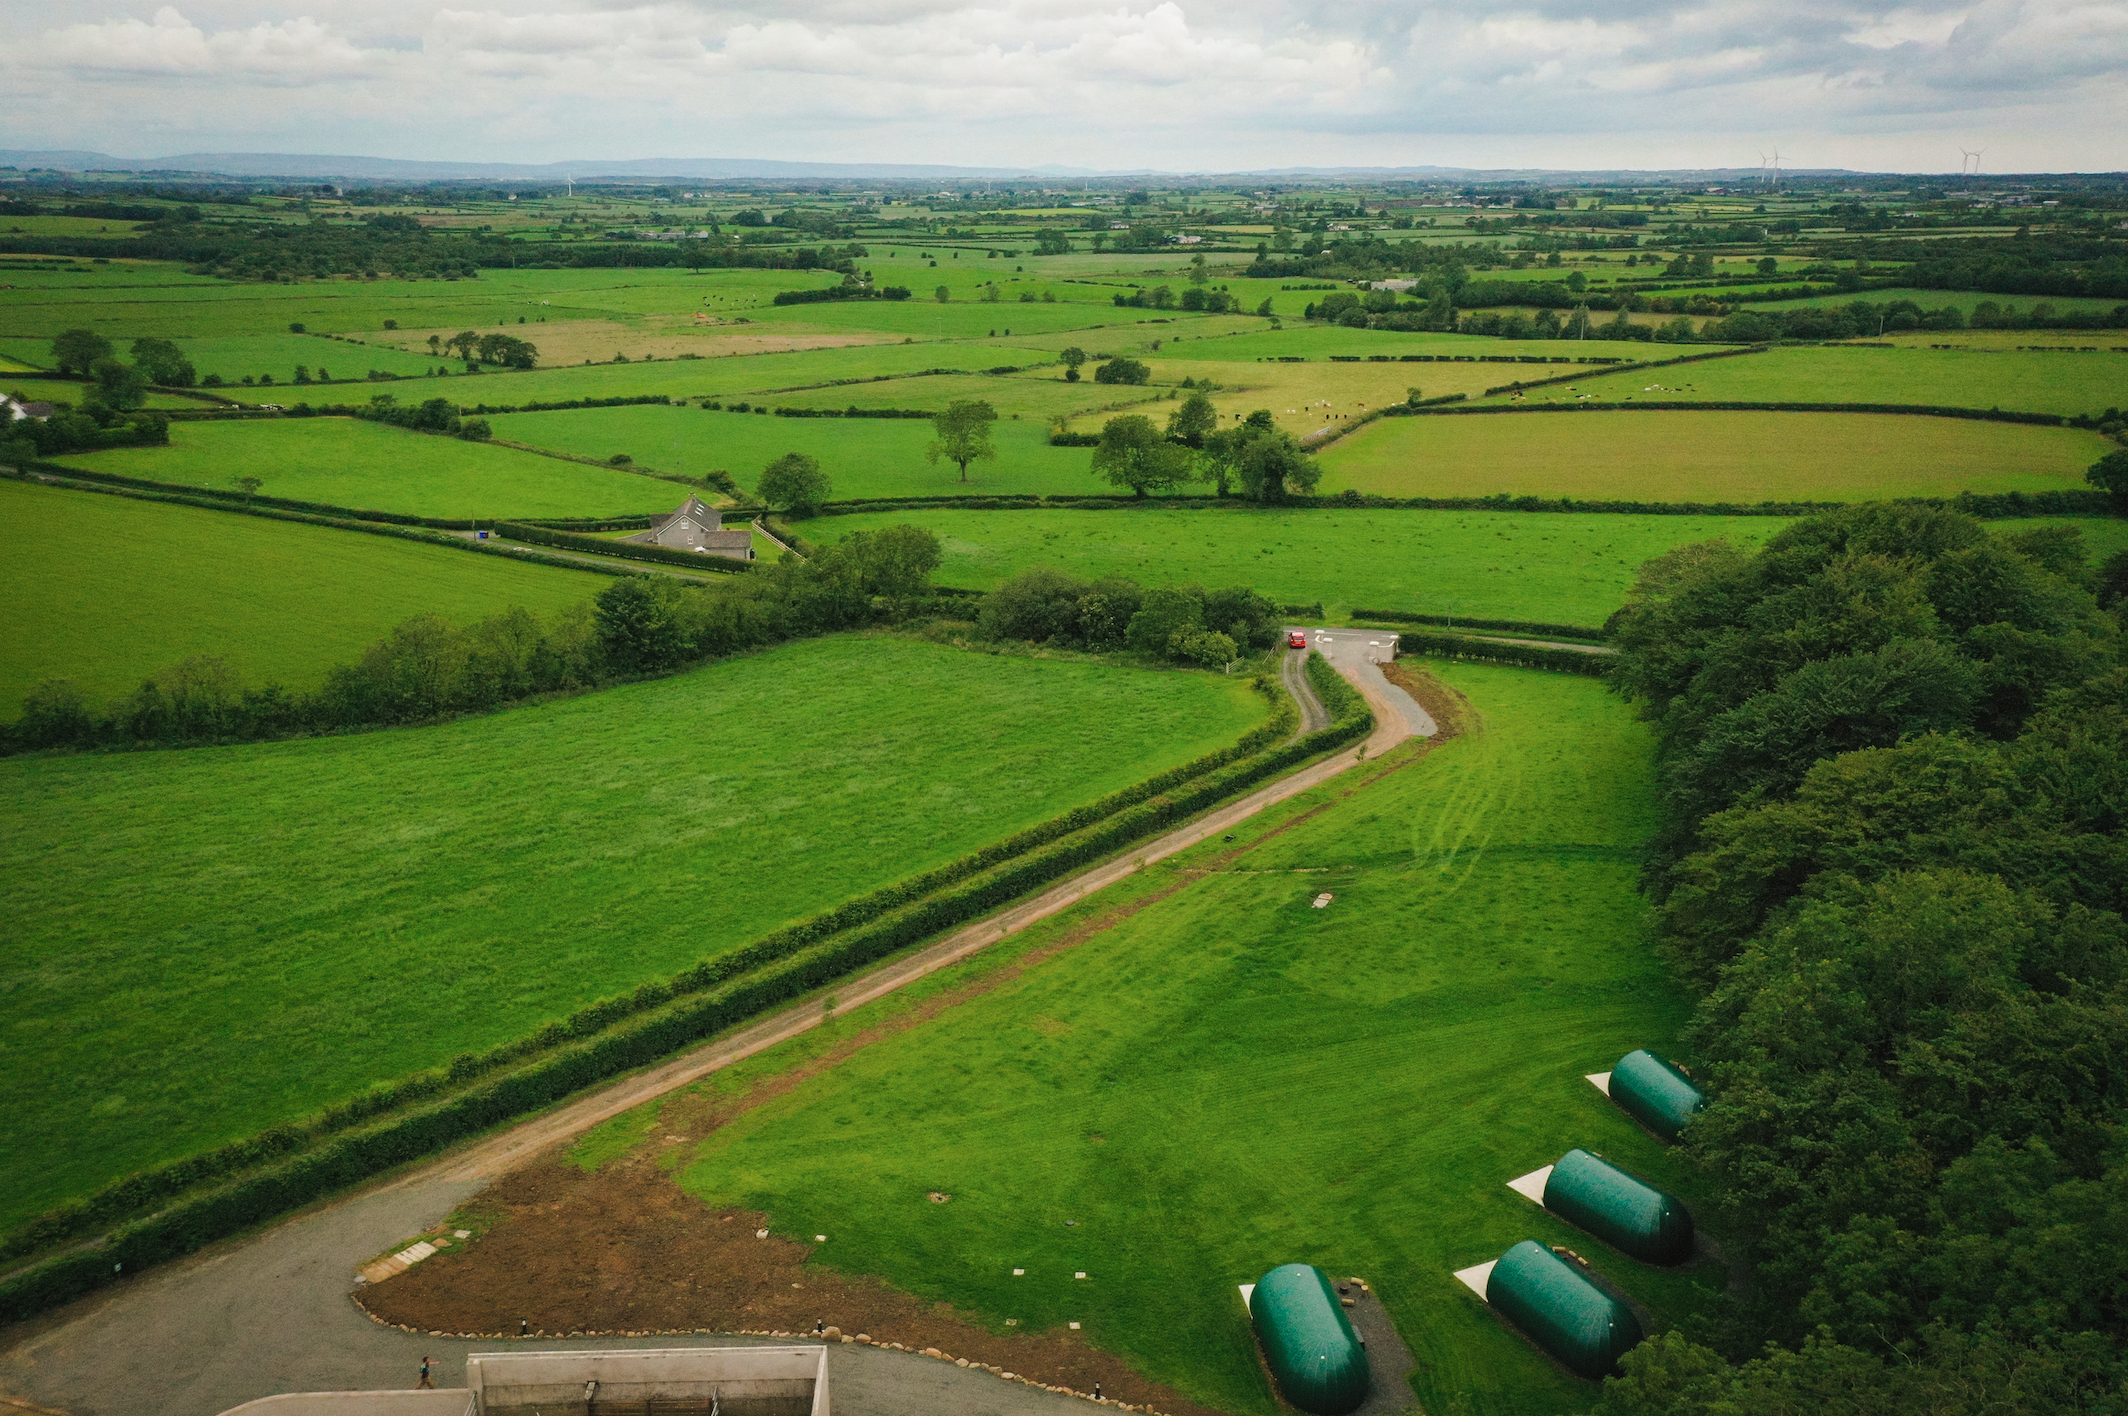 Causeway county glamping pods aerial view